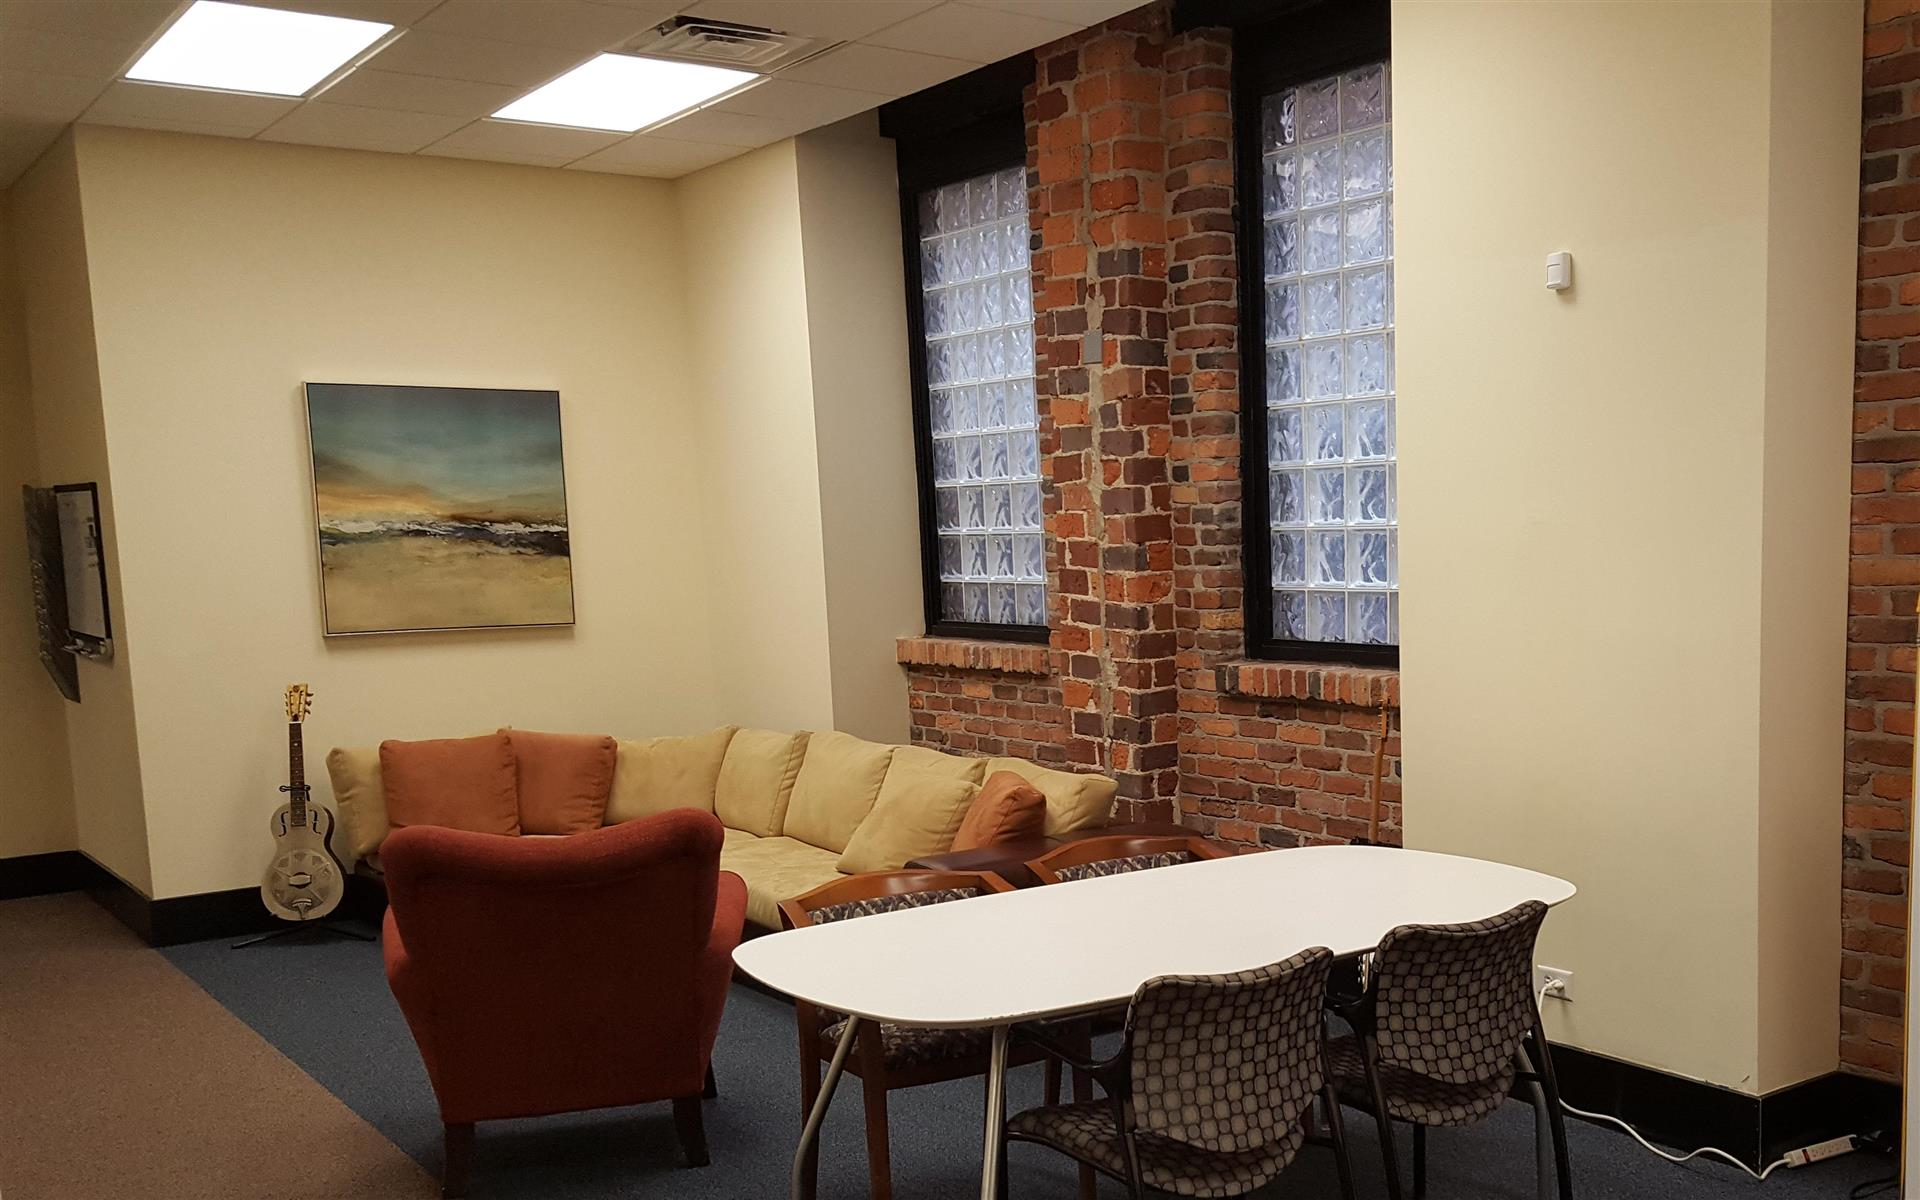 Gate Industries, LLC - Secure, large office space available